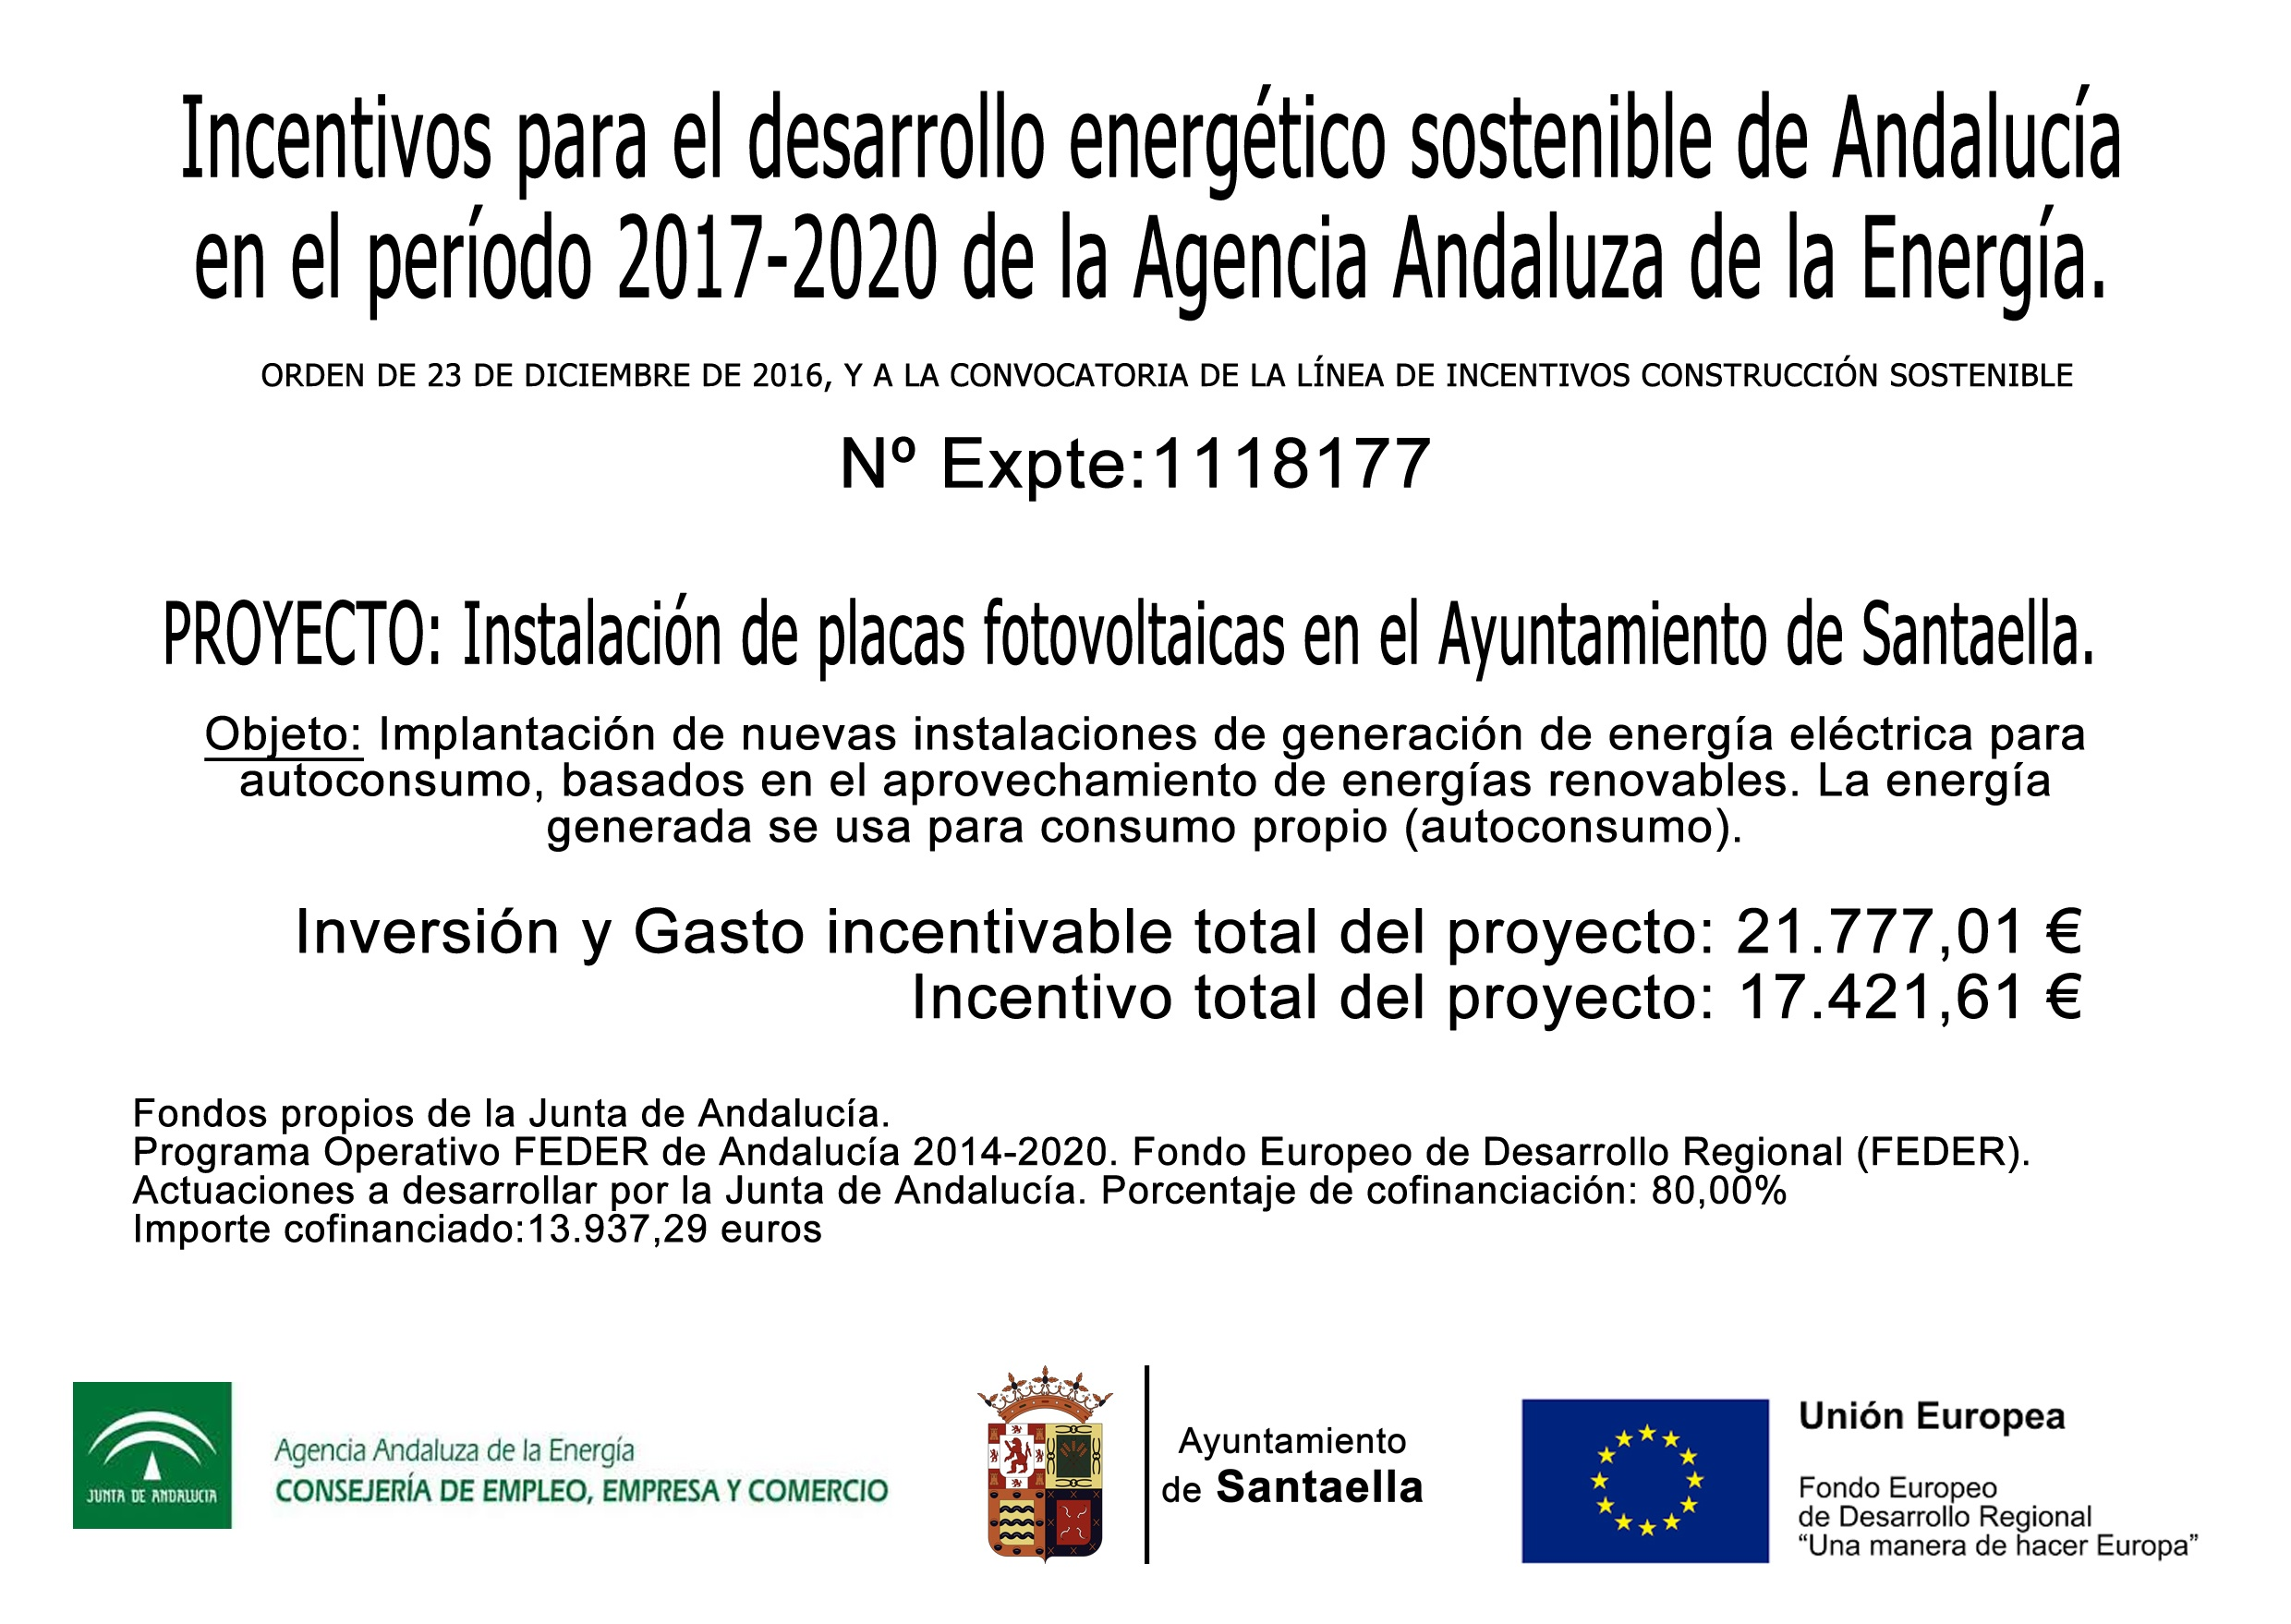 Cartel incentivos dearrollo energético sostenible expediente 1118177